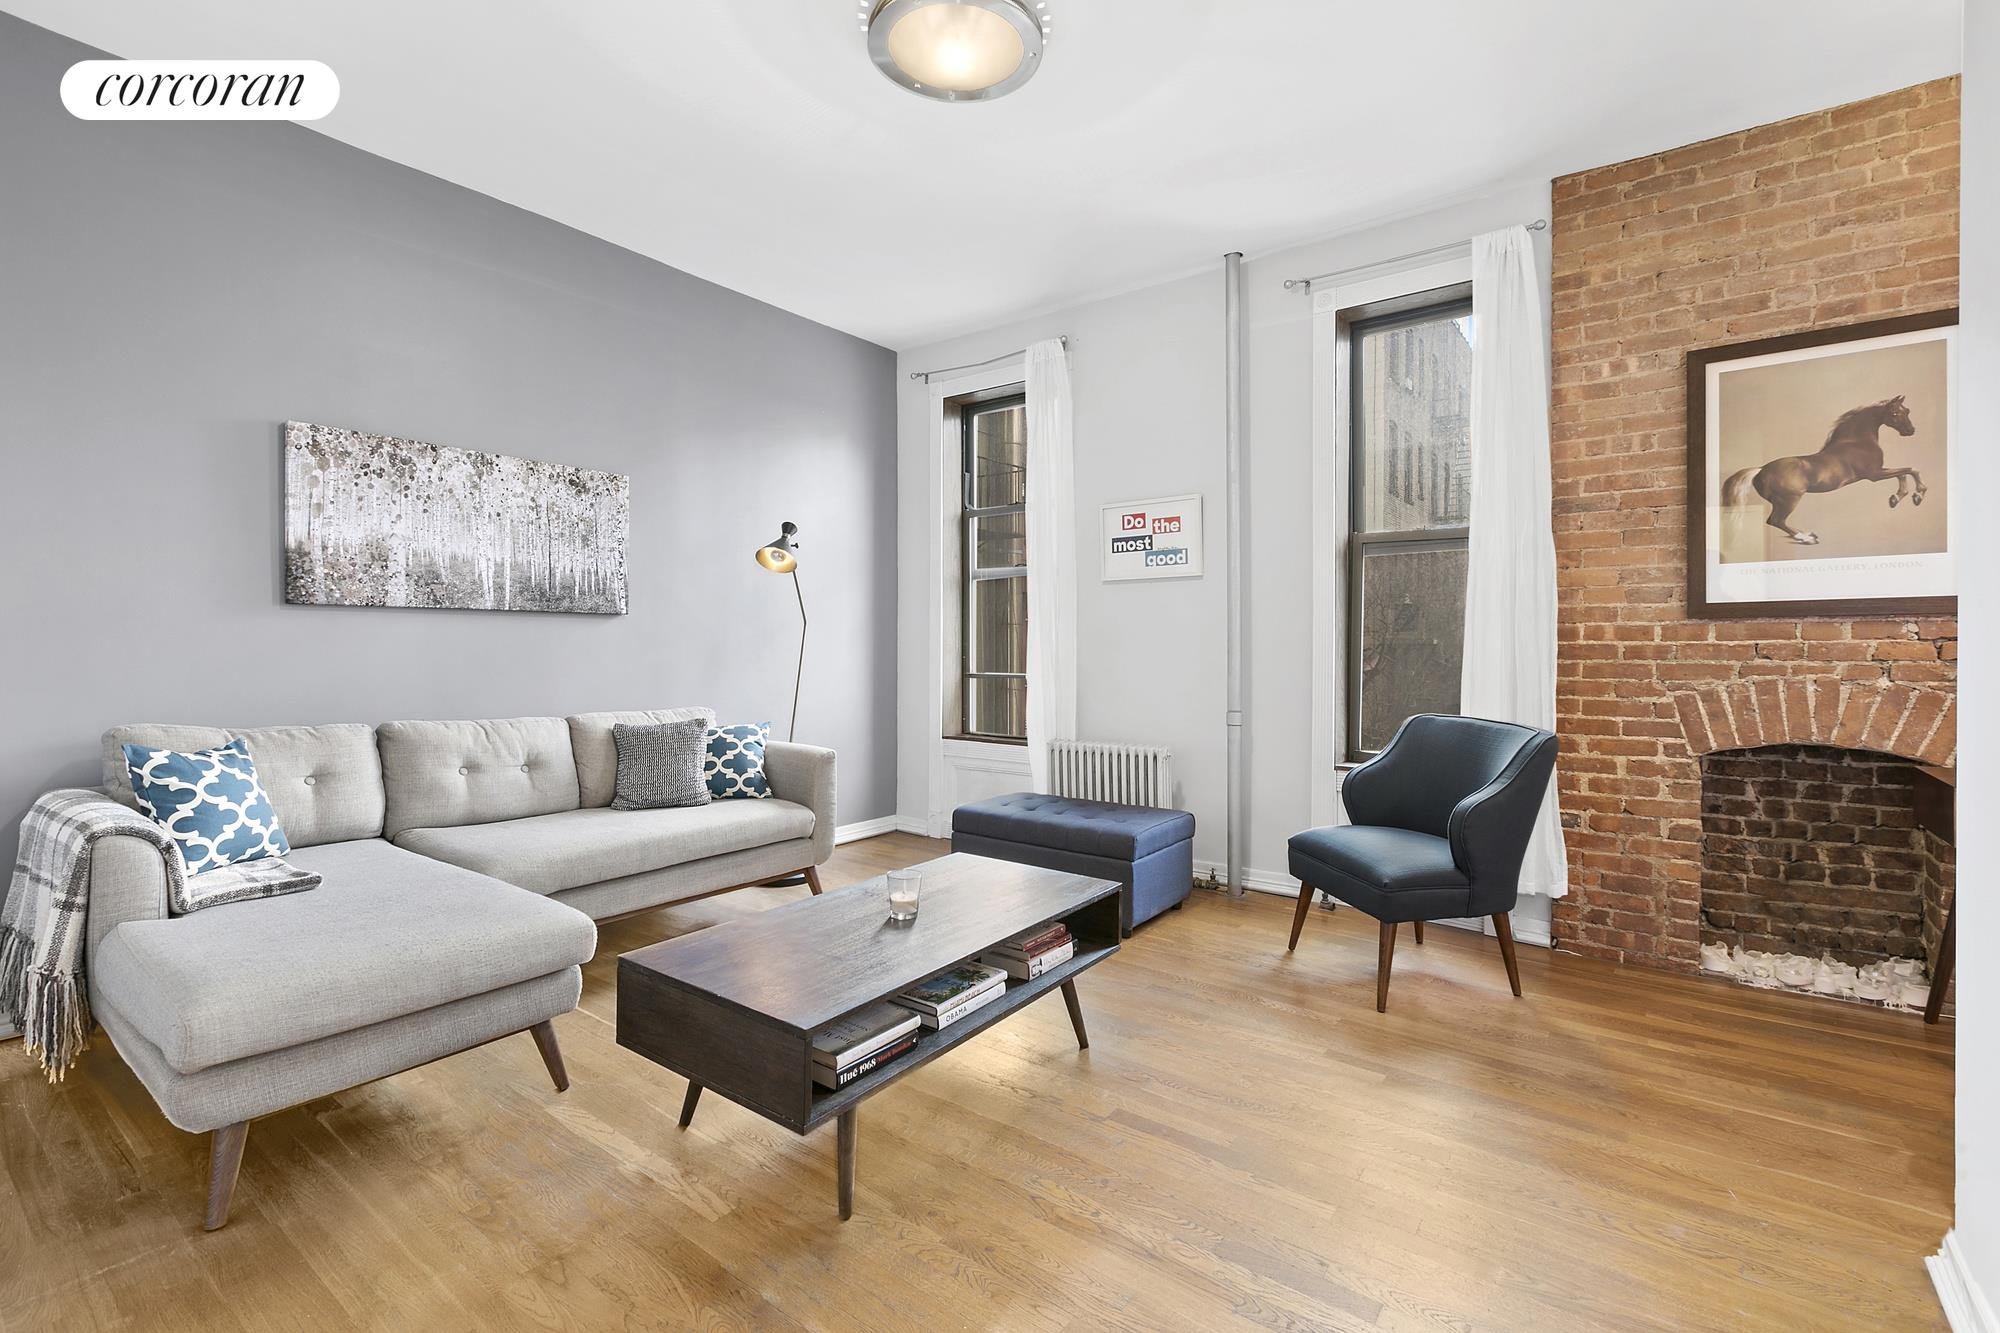 404 West 48th Street, 3B, living room